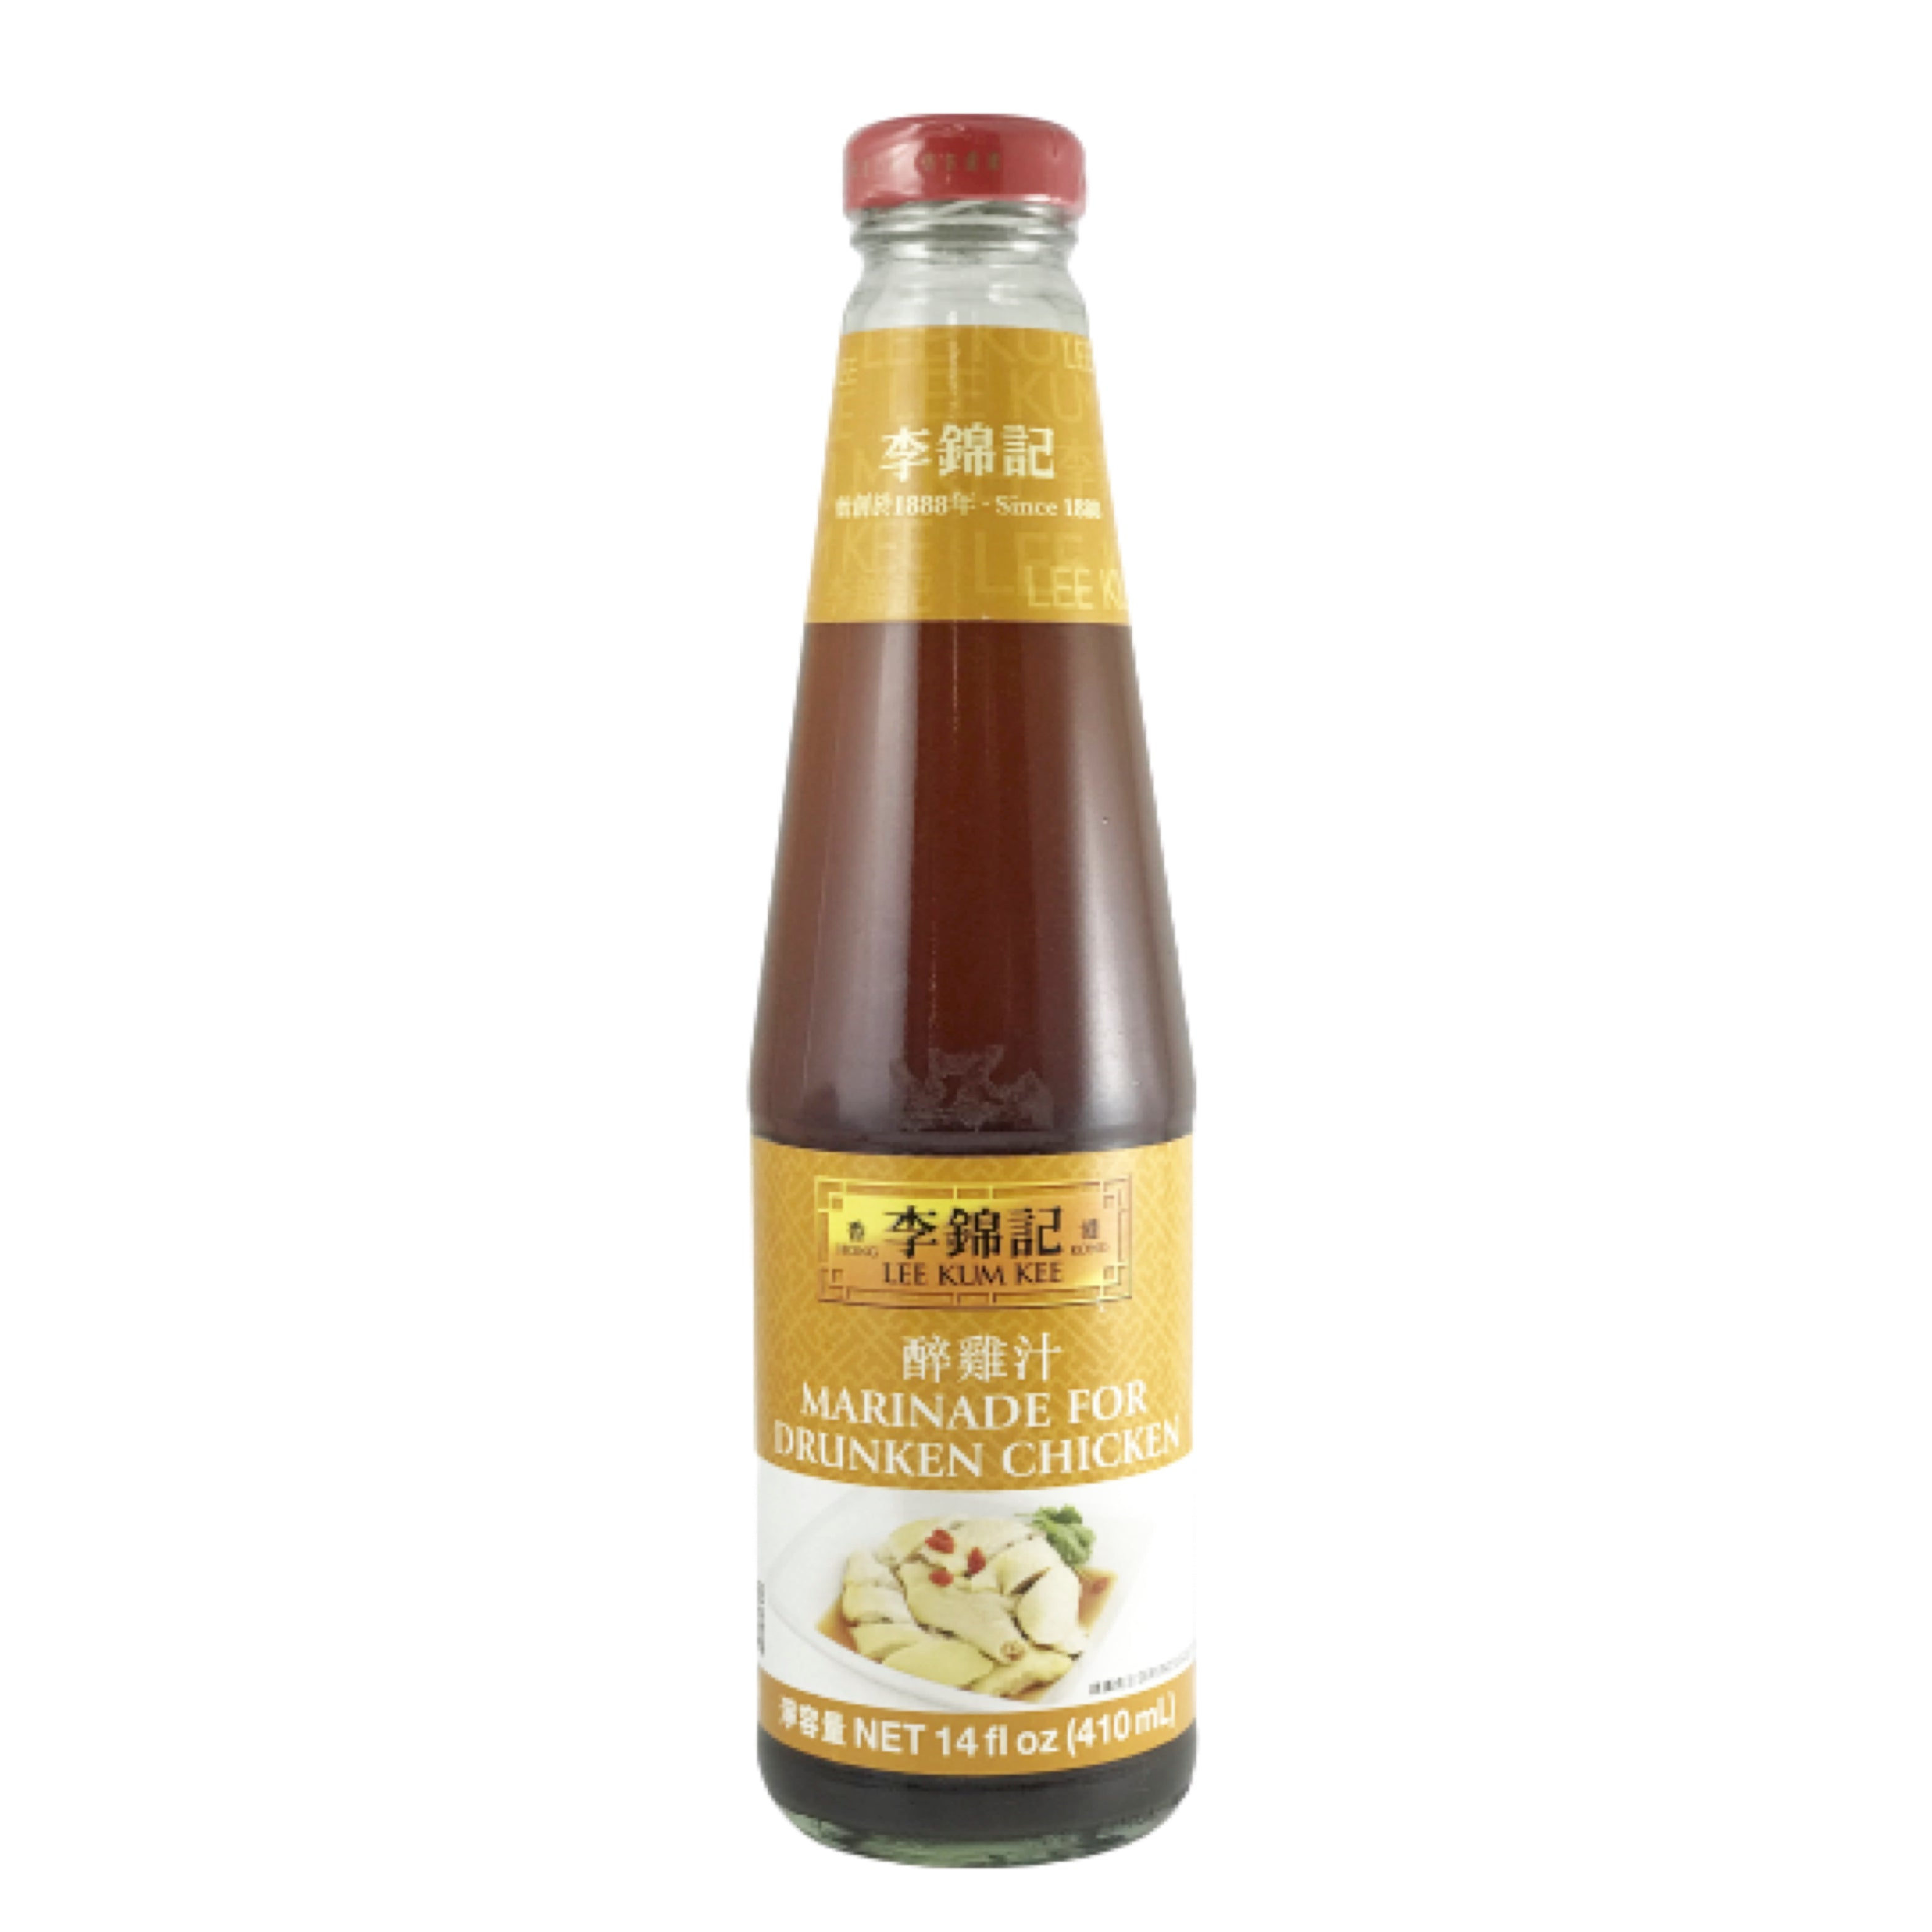 Lee Kum Kee Marinade For Drunken Chicken 李錦記 醉雞汁 14oz